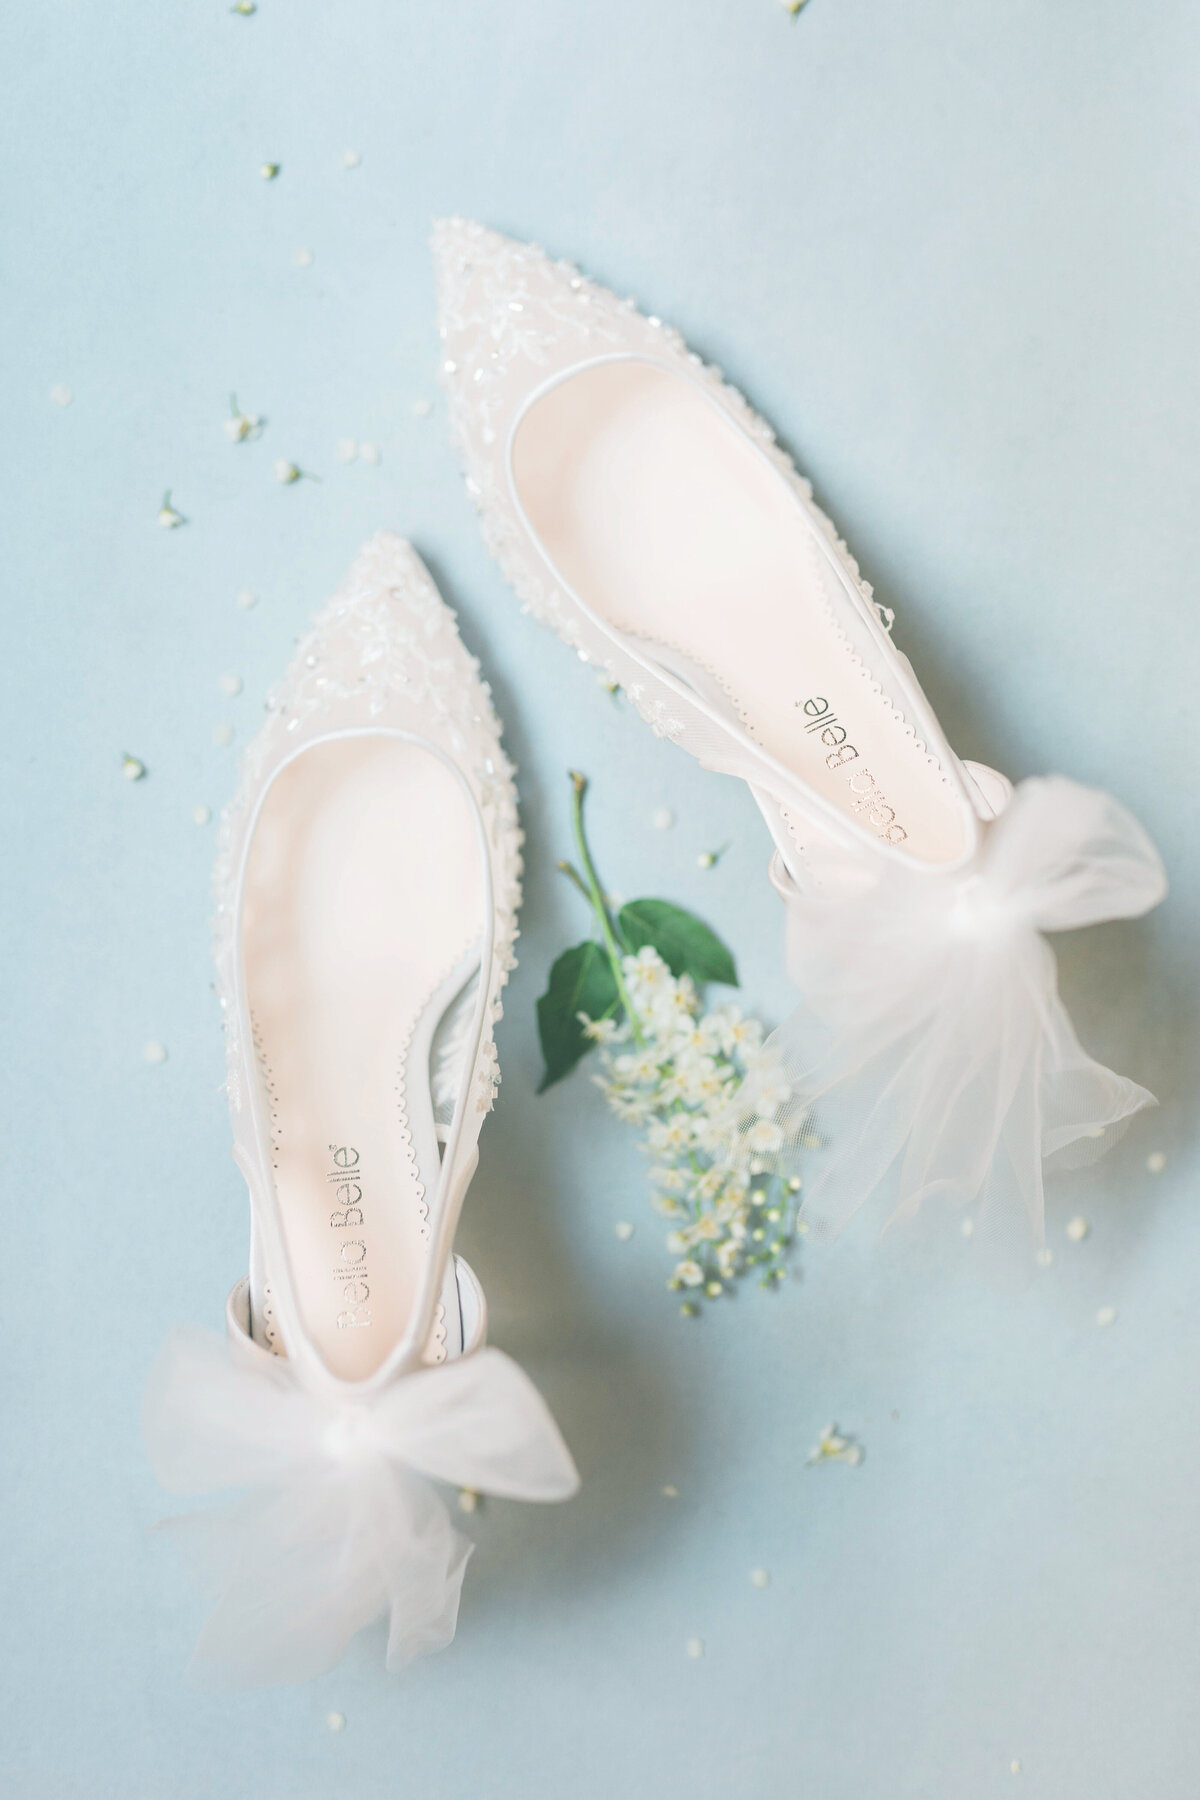 Blythely-Photographing-Bella-Belle-Shoes-Boise-Weddings-59